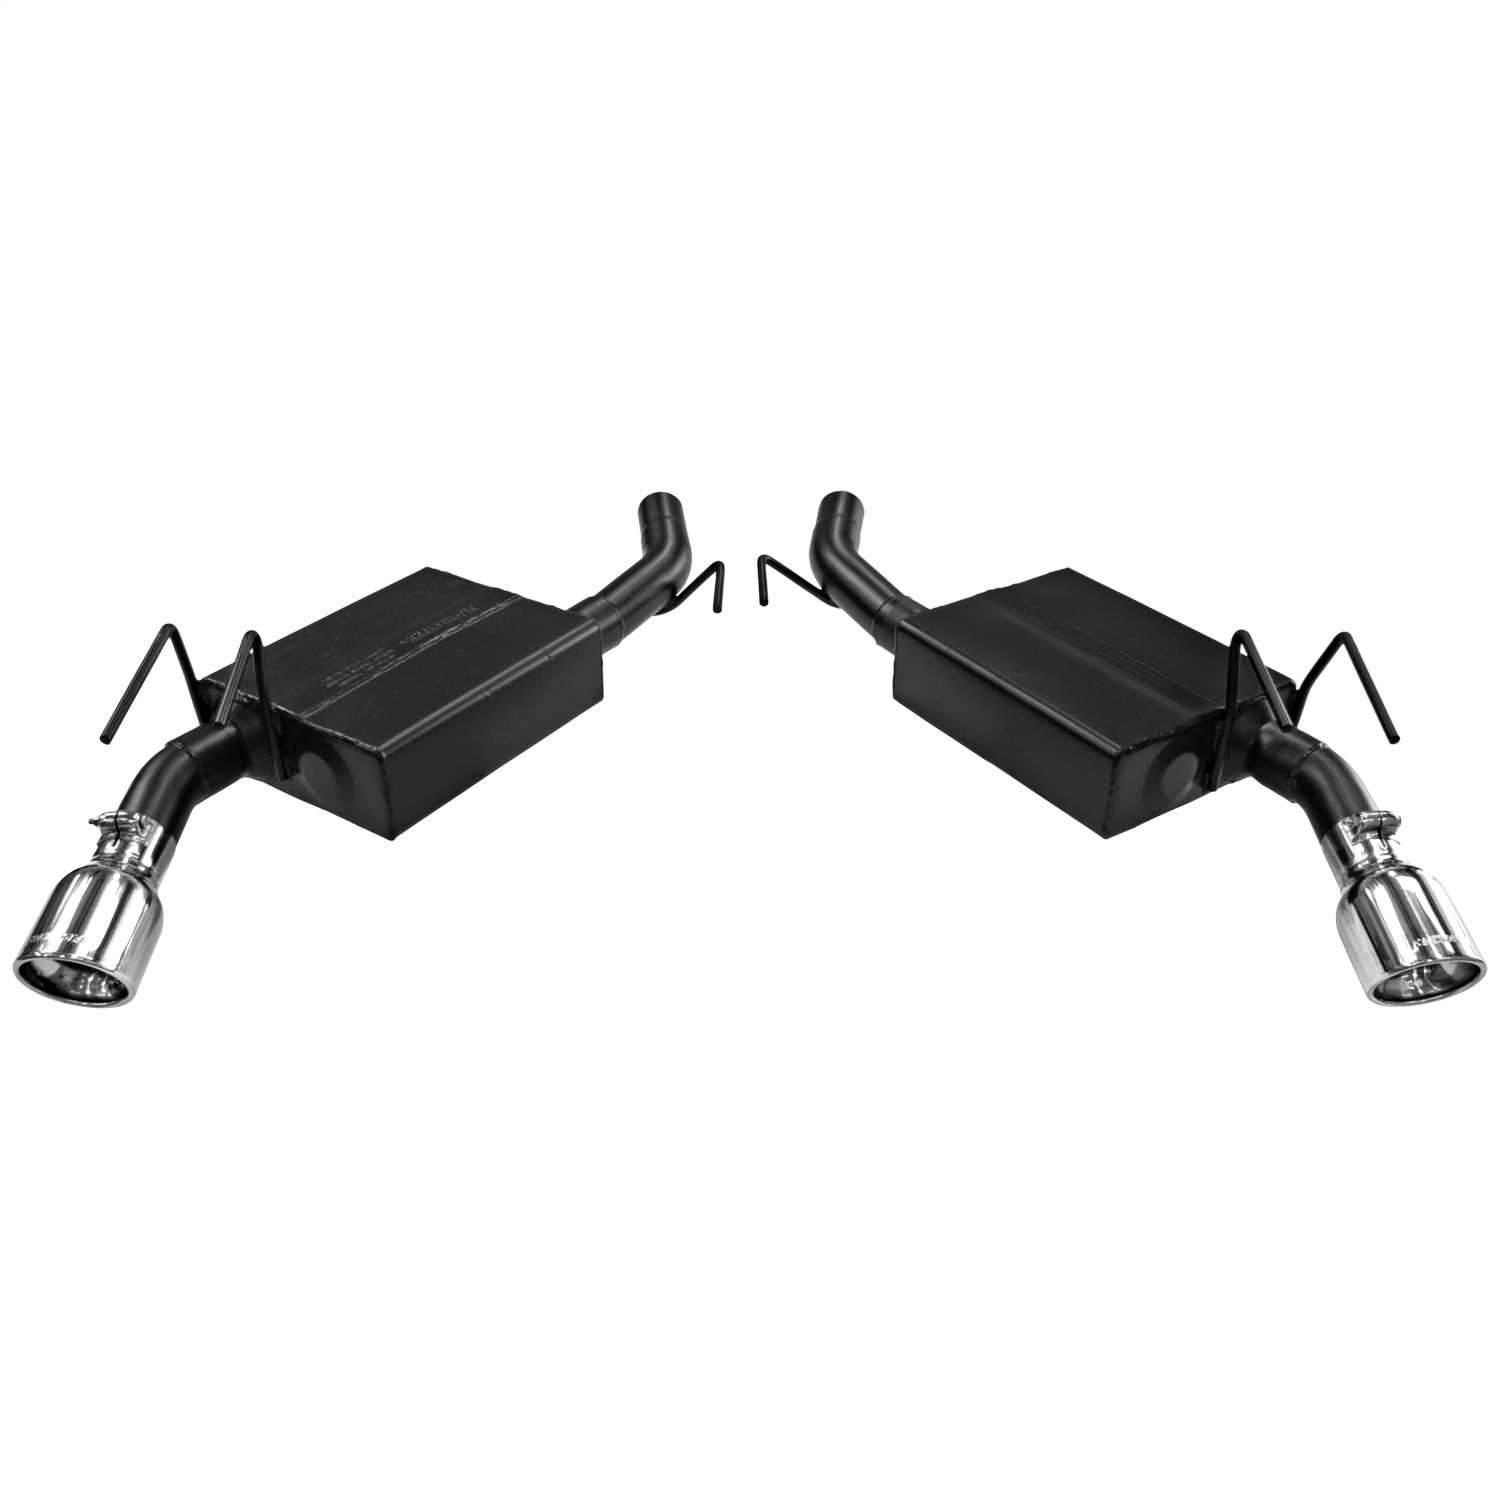 817483 Flowmaster American Thunder Axle Back Exhaust System